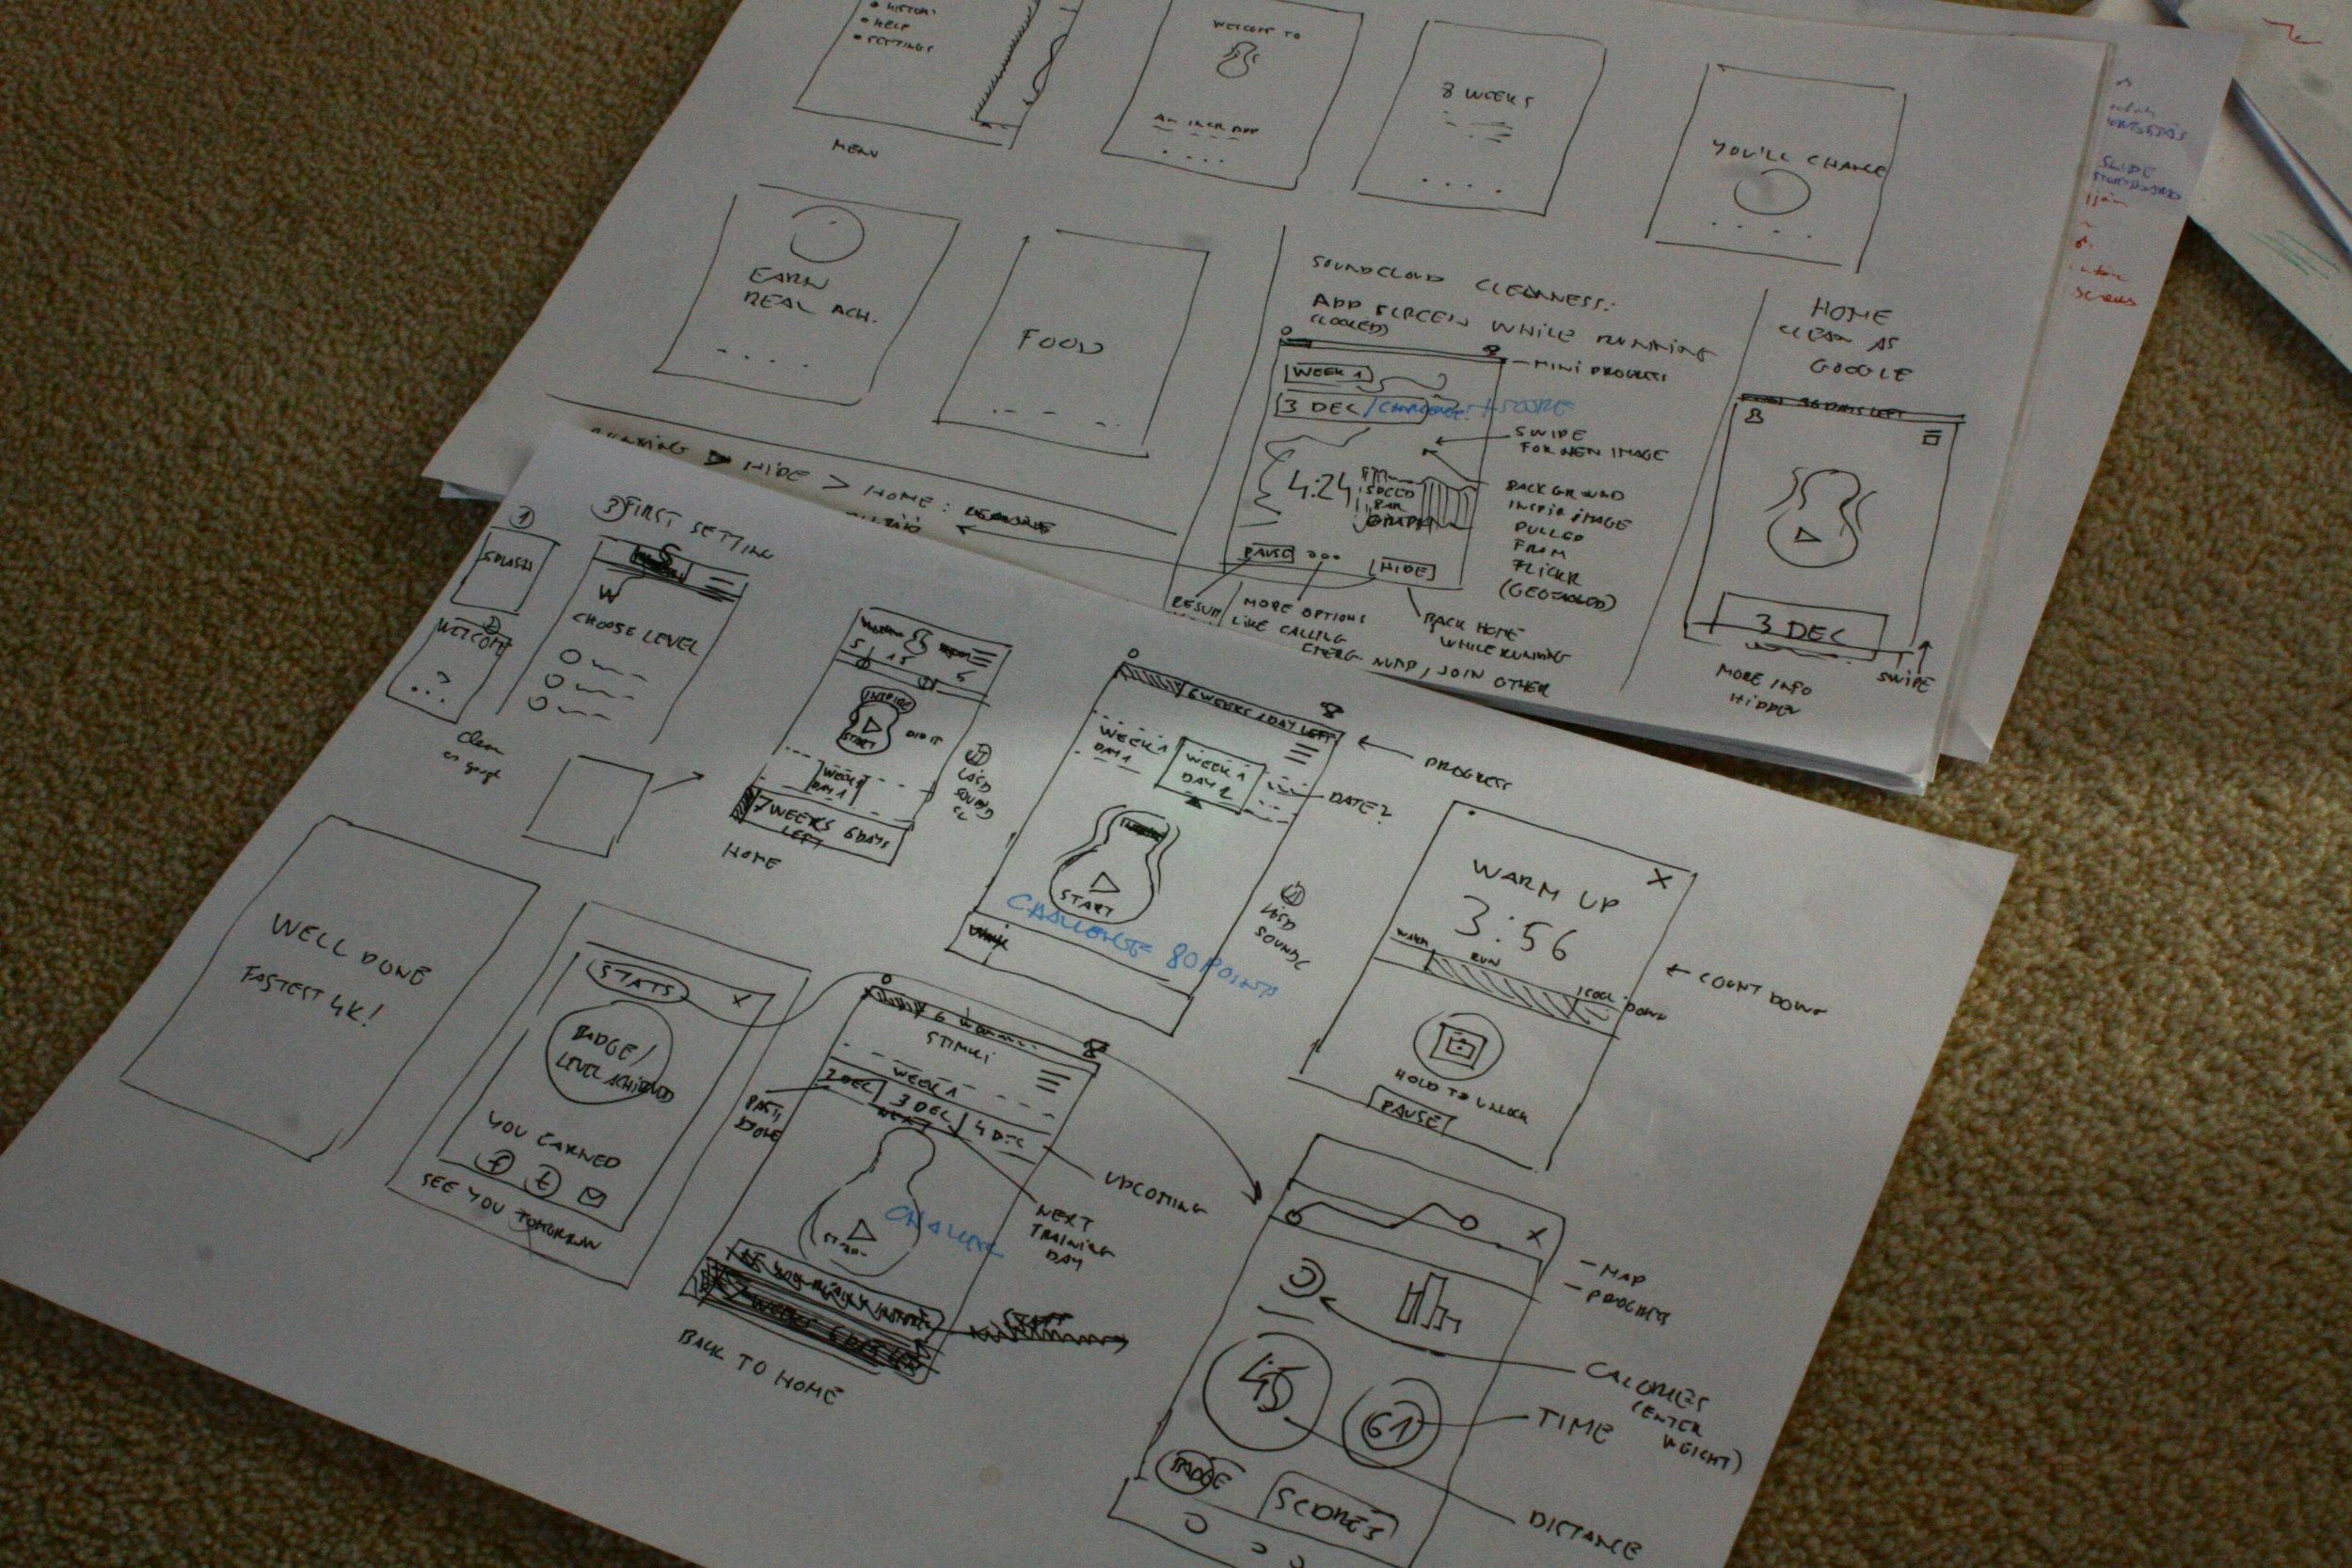 USERFLOW AND WIREFRAMES: The ideation of new features begins